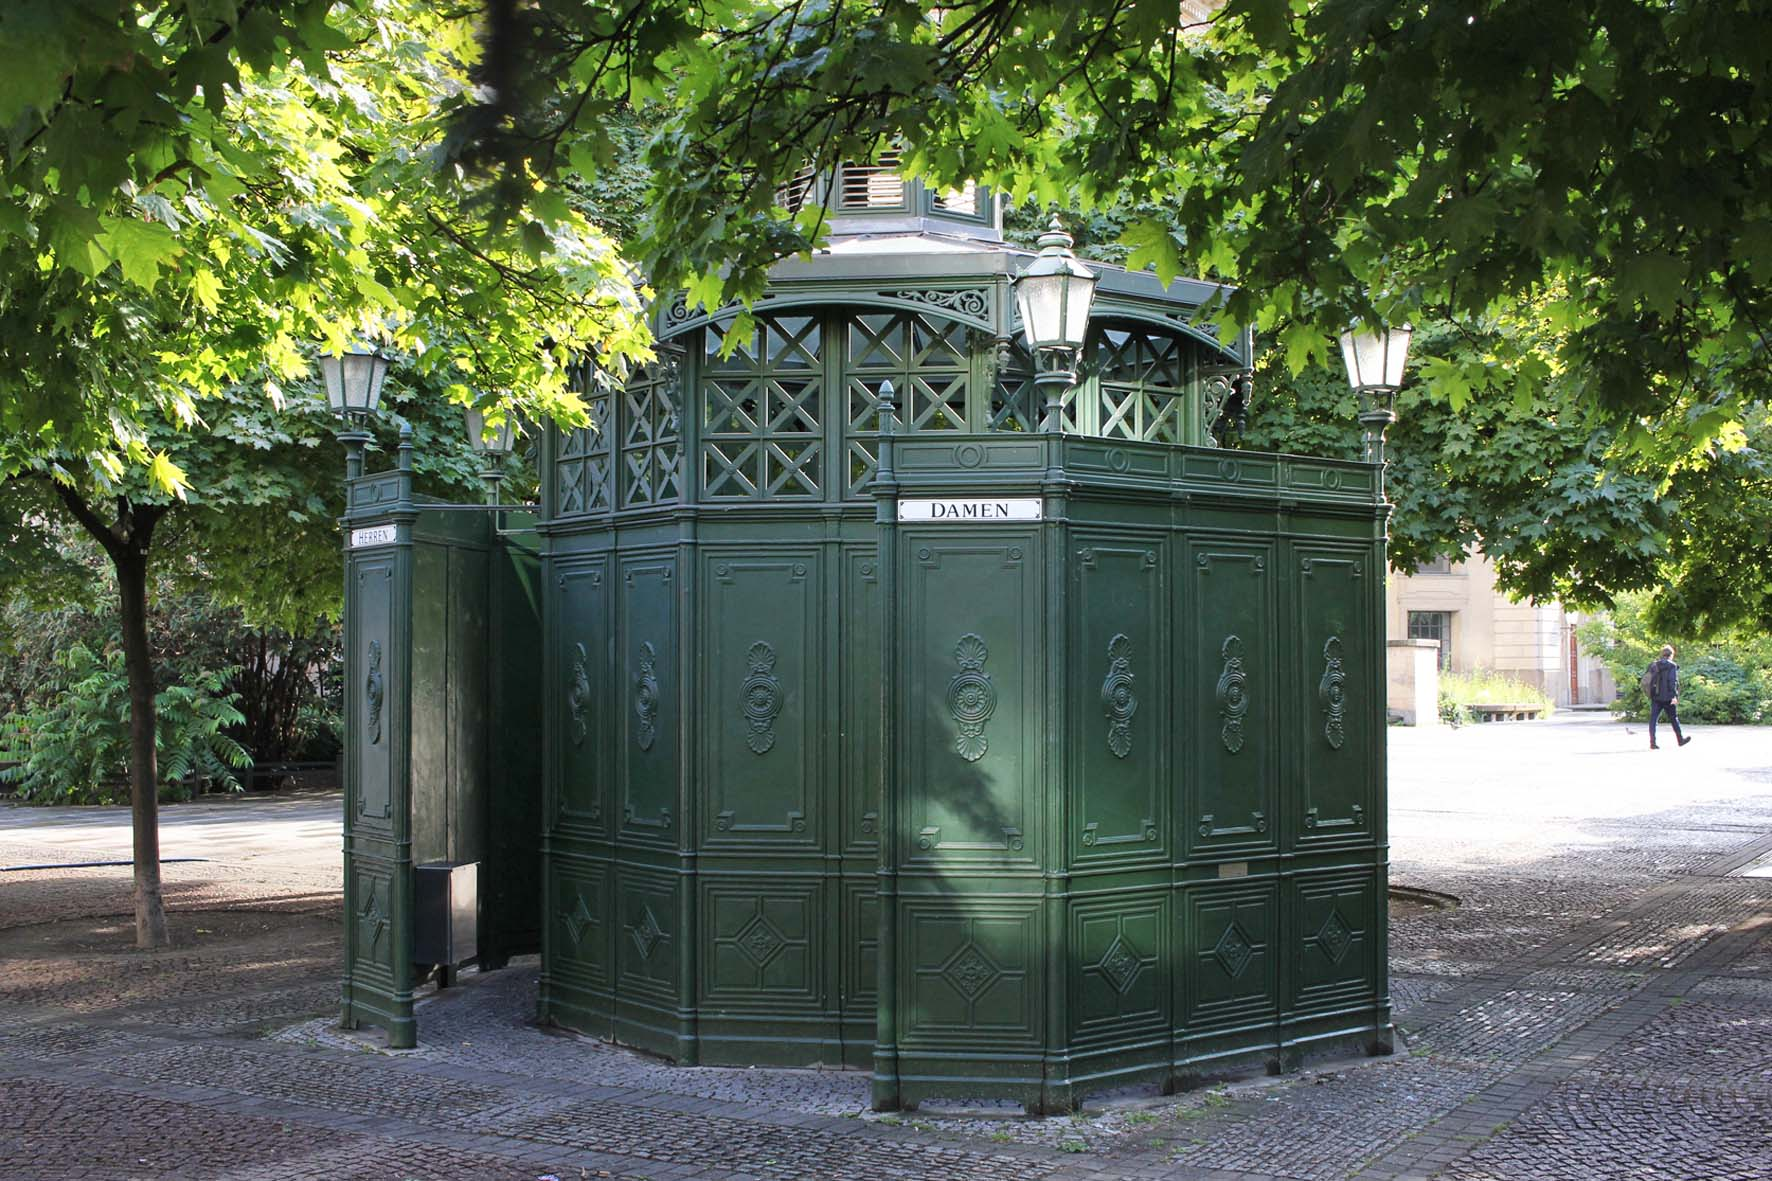 Café Achteck - Gendarmenmarkt - an example of Berlin's classic 19th century green cast iron public toilets